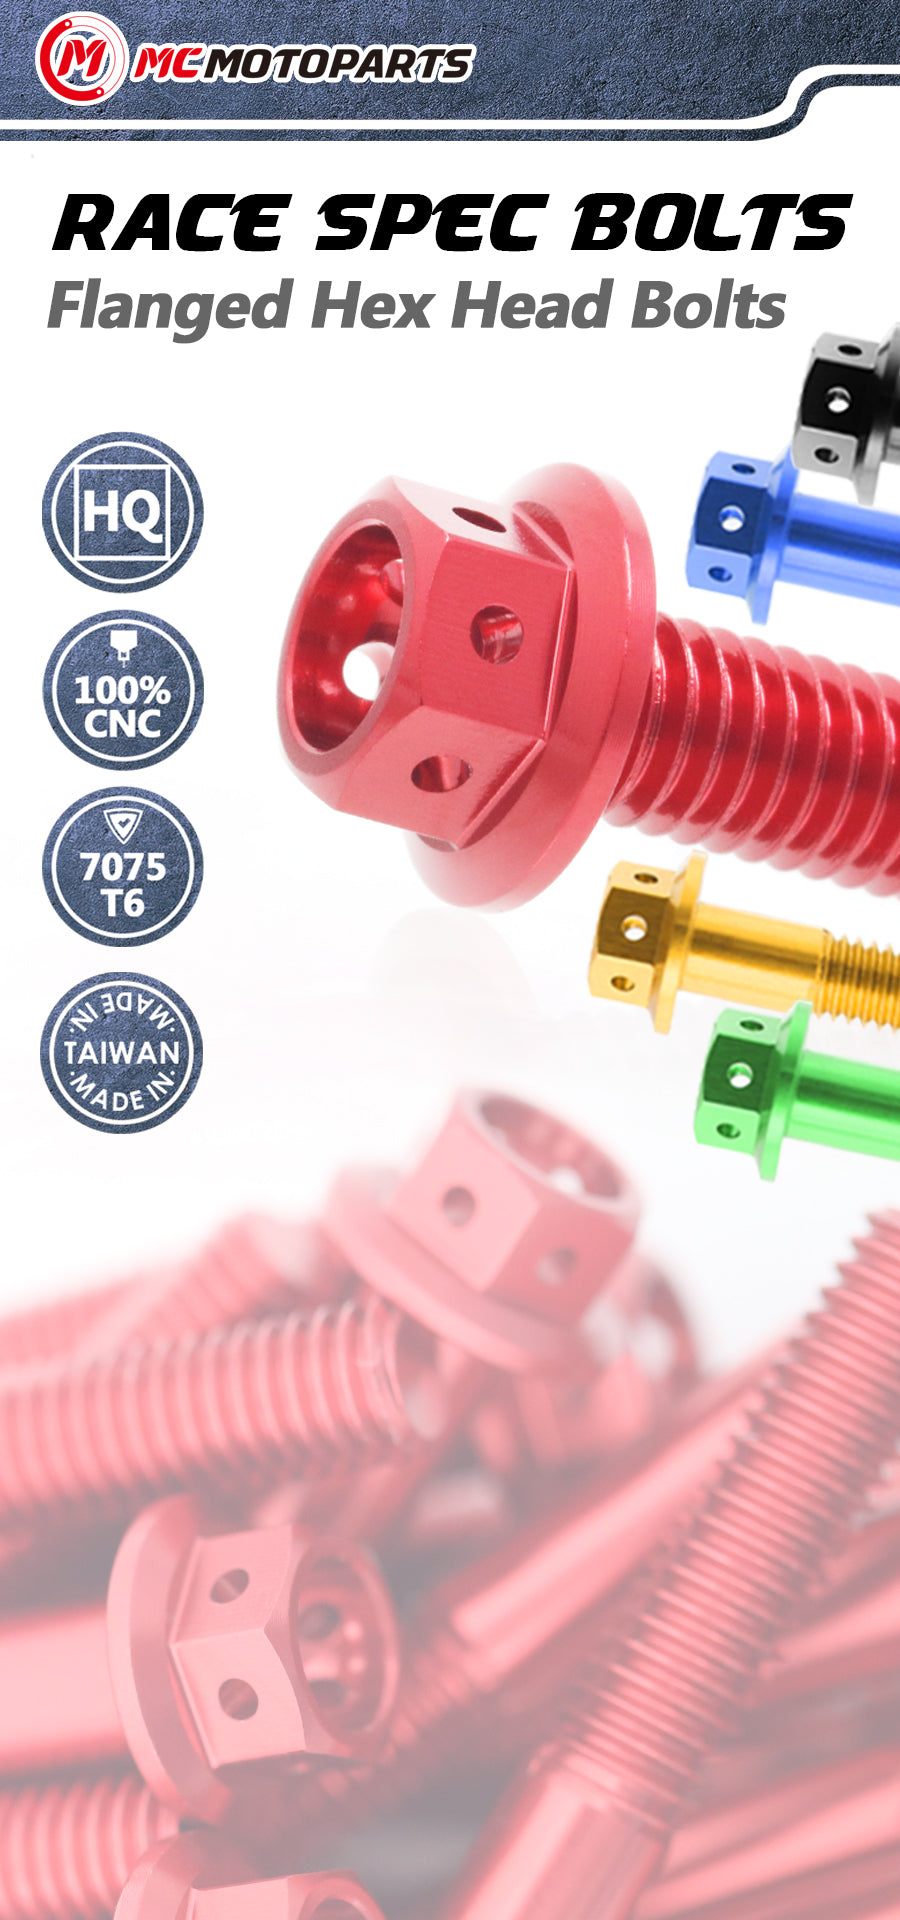 MC Motoparts CNC Race Spec Bolts for motorcycle customization and decorations